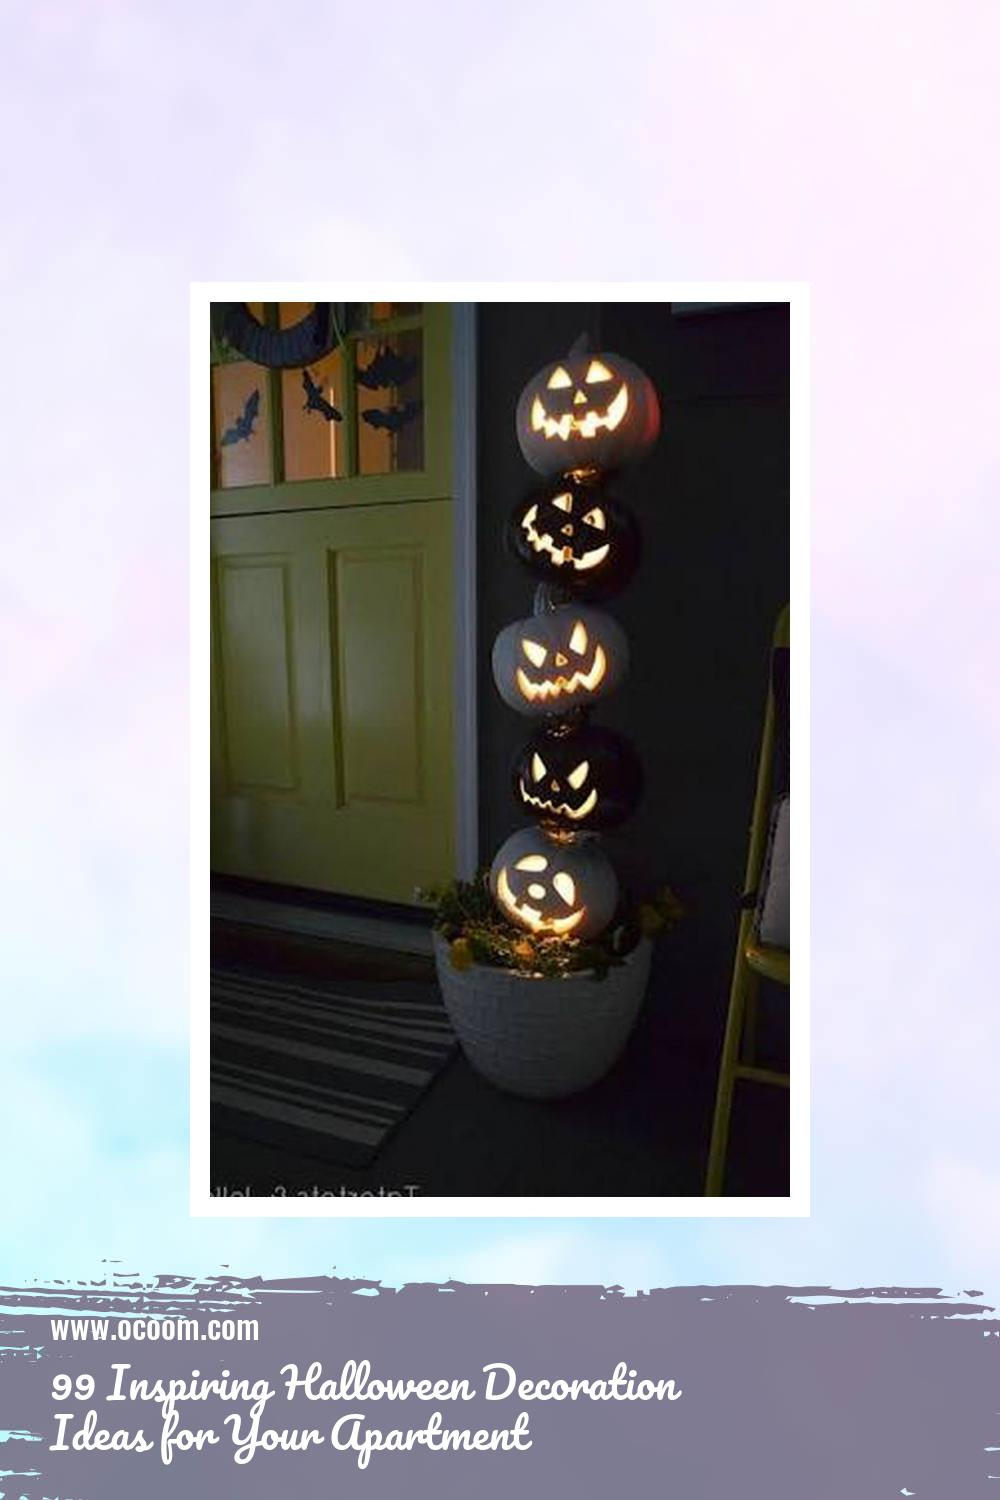 99 Inspiring Halloween Decoration Ideas for Your Apartment 18